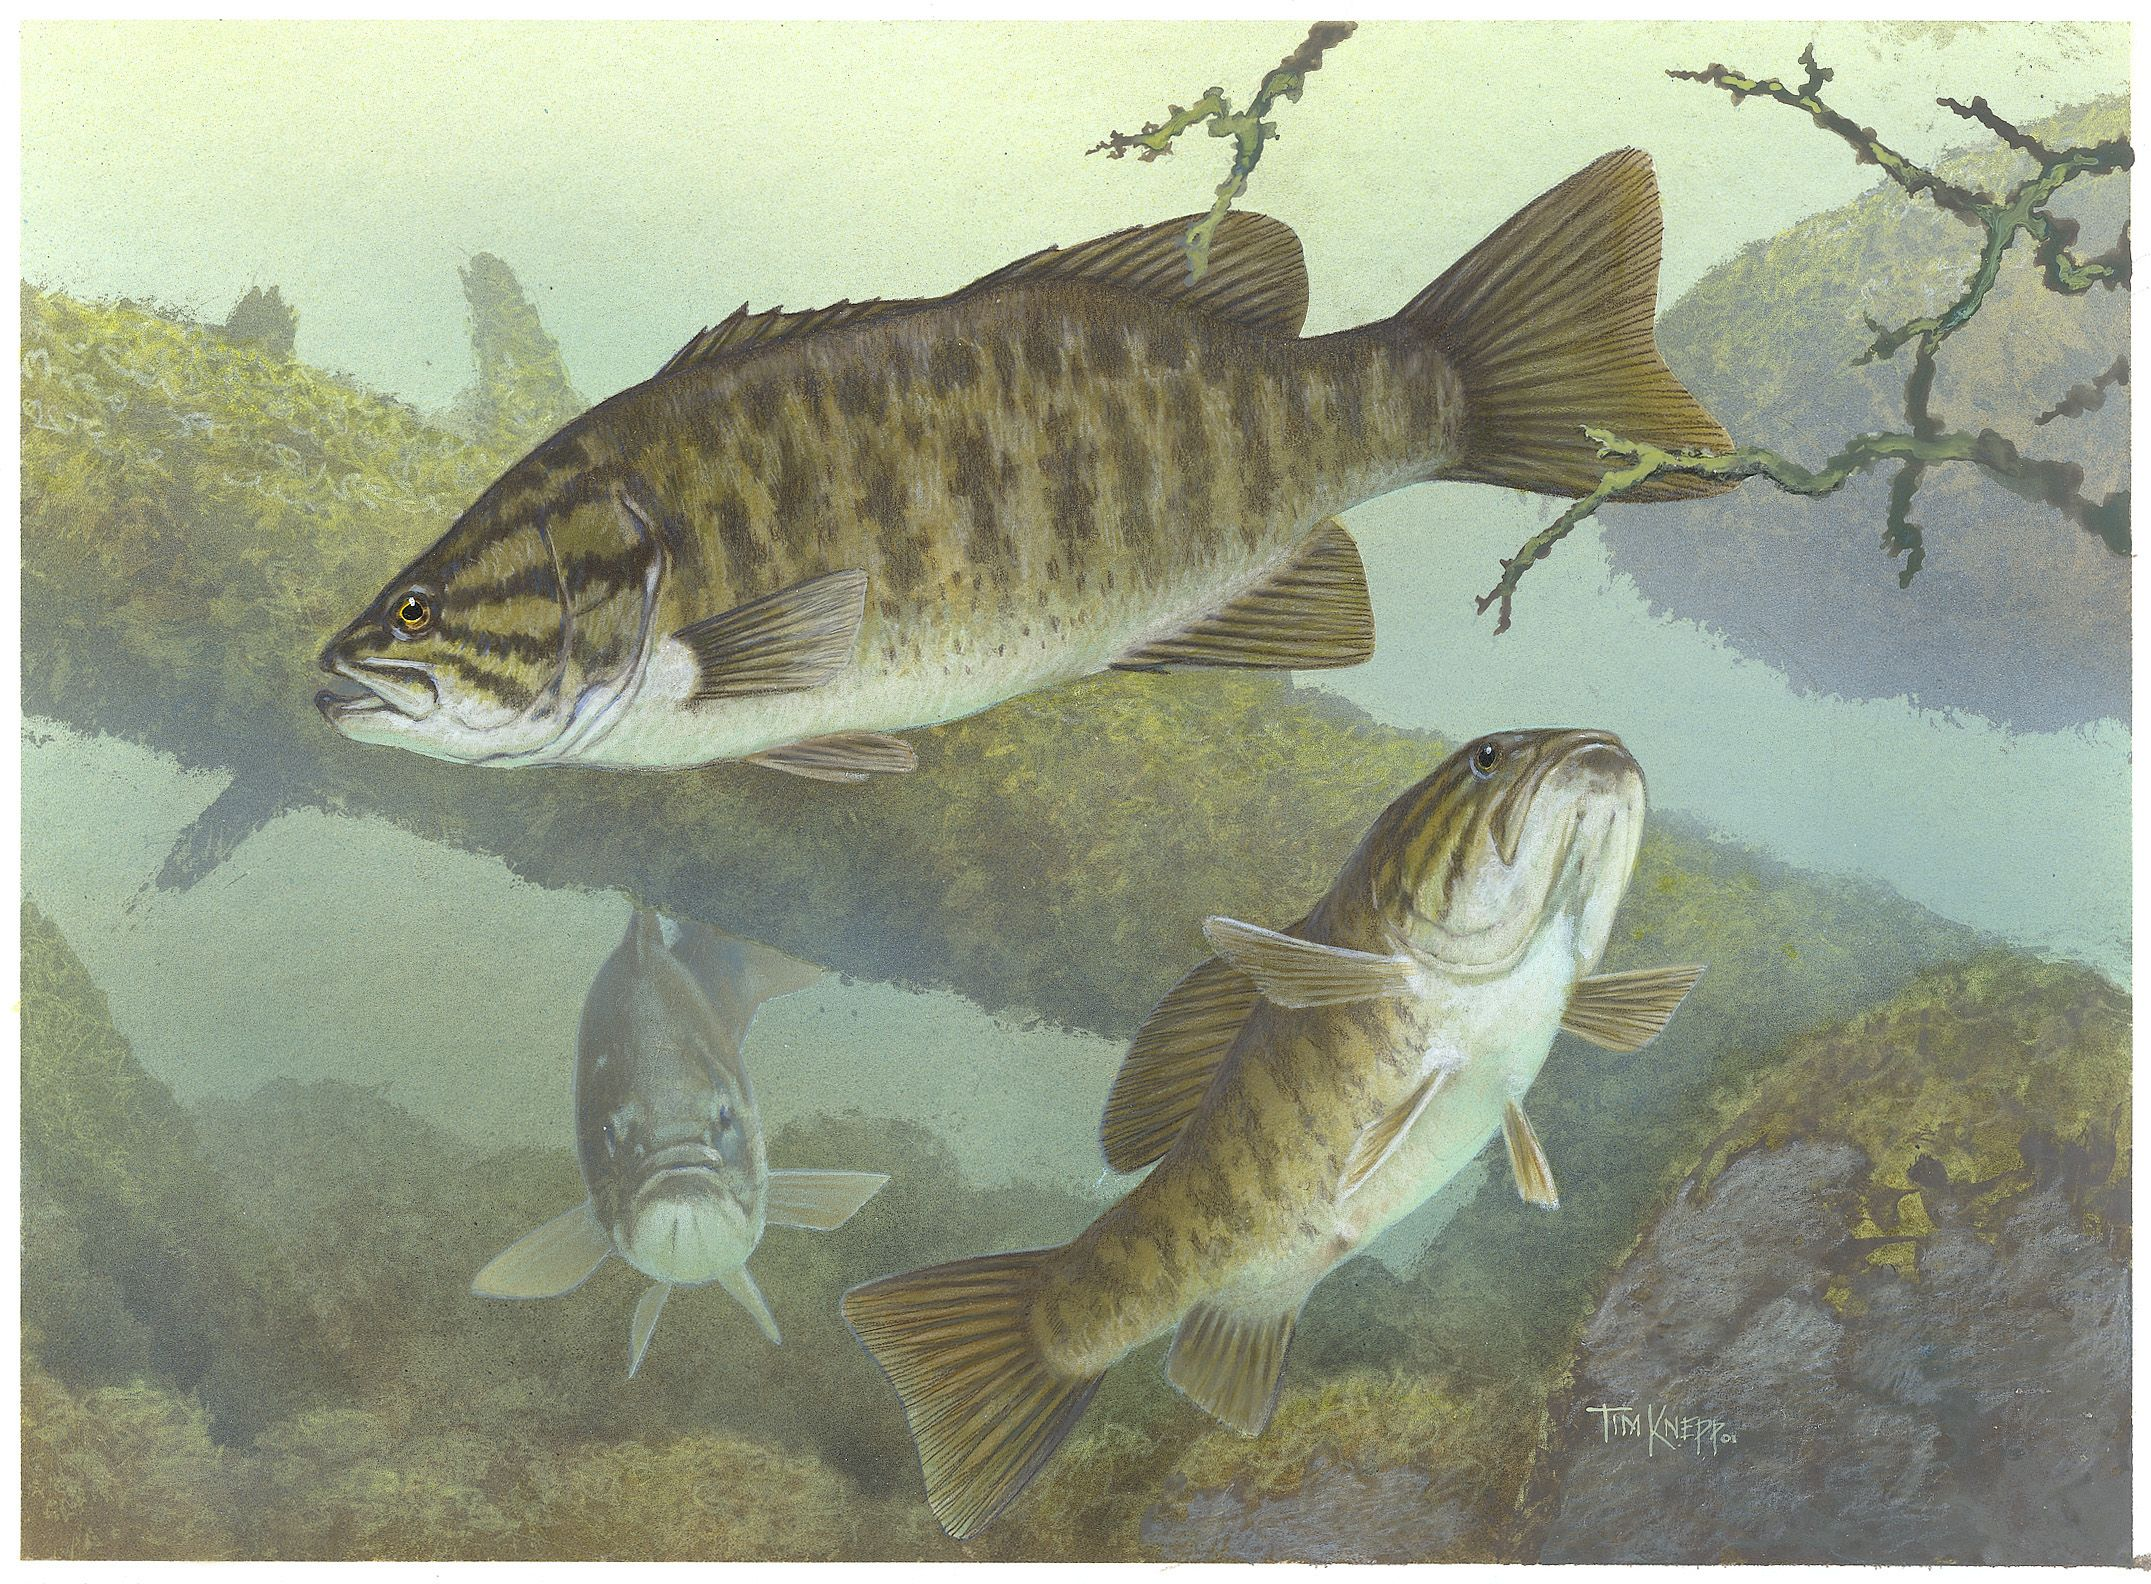 Freshwater fish art - Bass Images Of Fish Smallmouth Bass Public Domain Image Click To Follow To